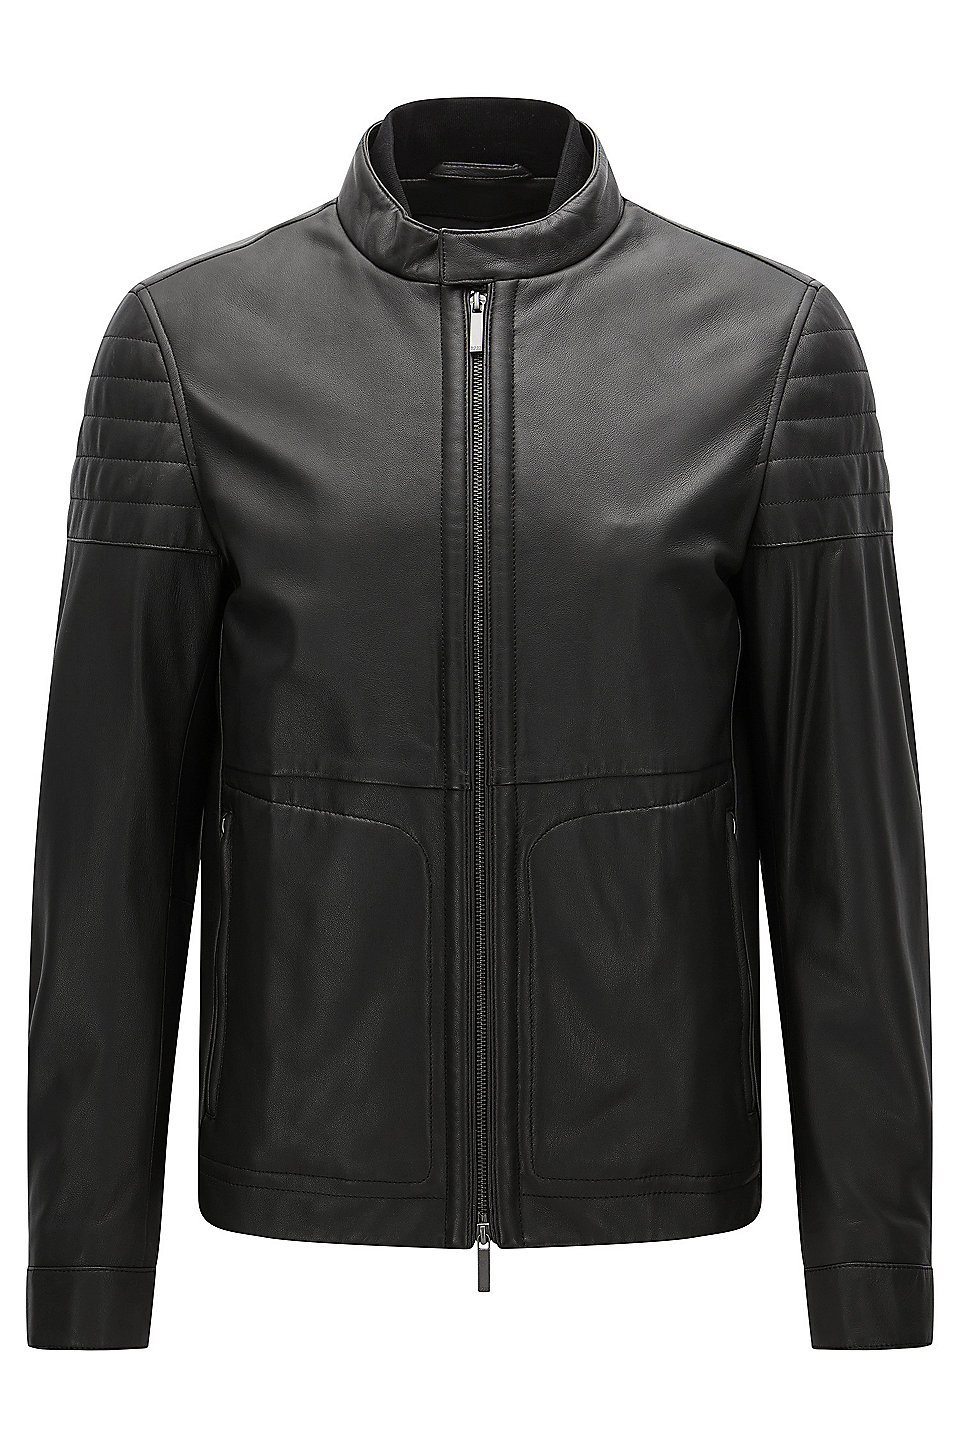 Hugo boss leather jackets for men